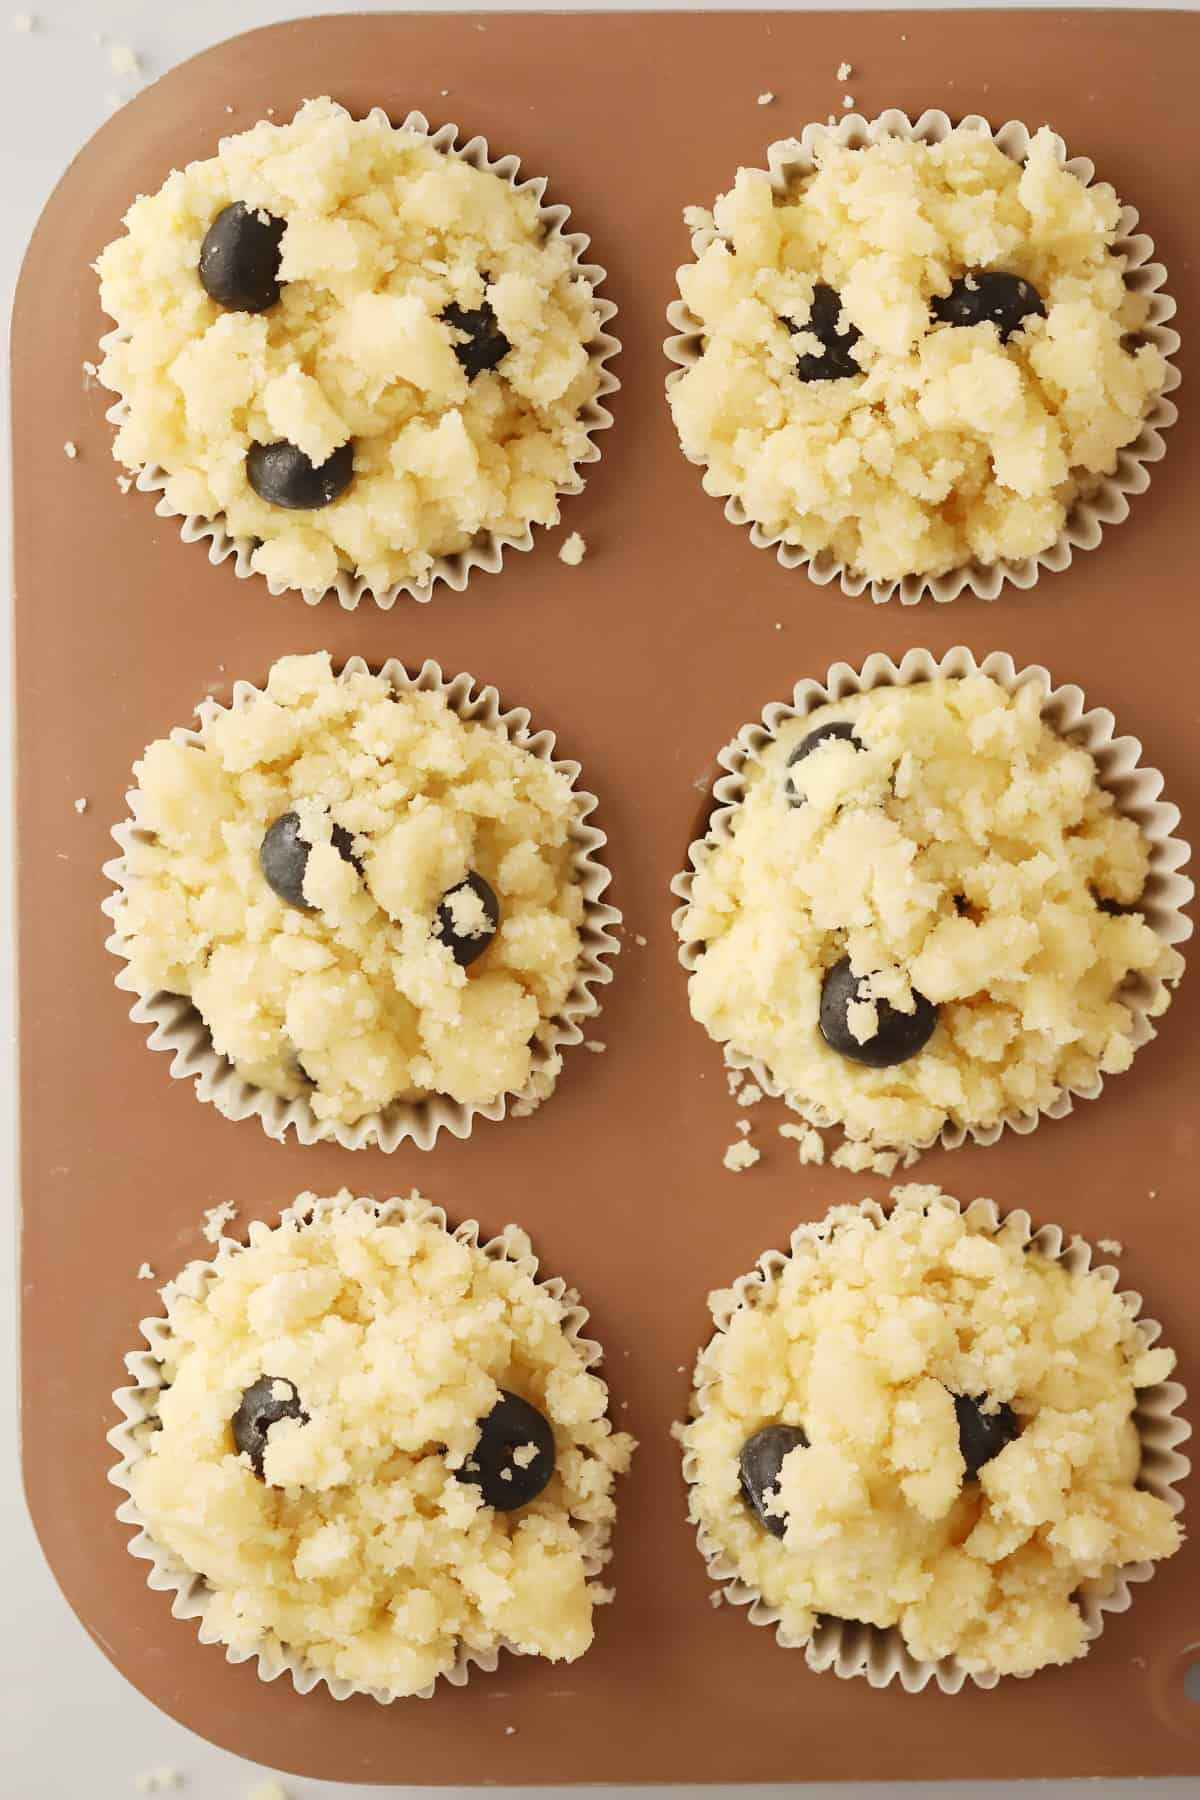 Muffins topped with blueberries and streusel in a muffin pan.